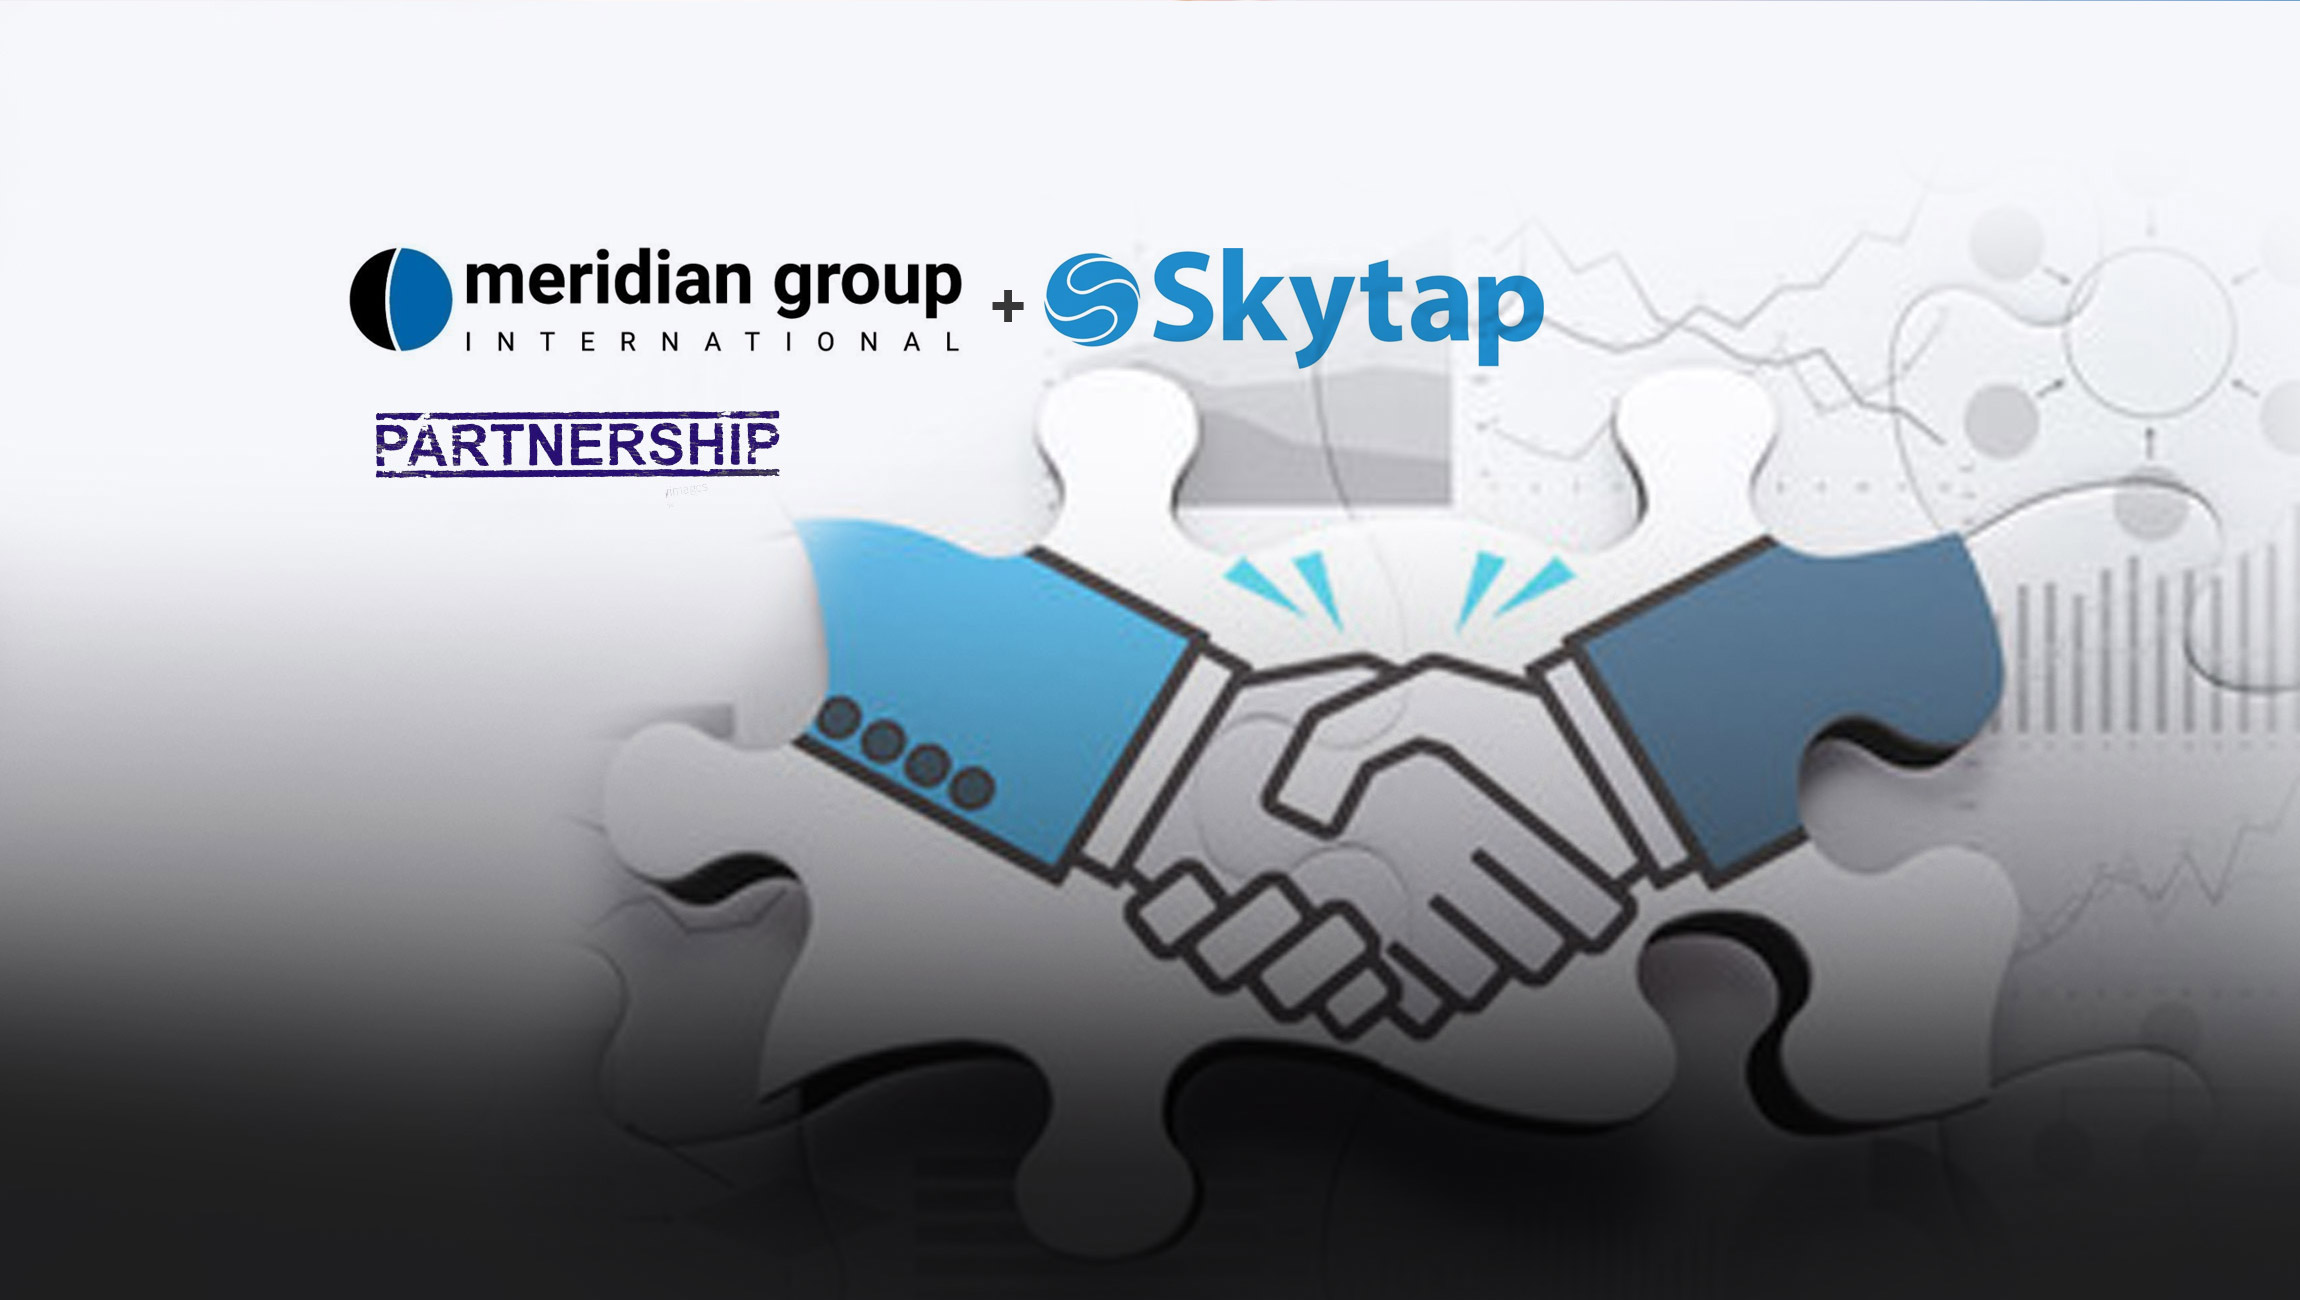 Meridian-Group-International-and-Skytap-enter-into-a-Global-Alliance-Partnership-to-Help-Customers-Migrate-Their-IBM-Power-Workloads-to-Microsoft-Azure